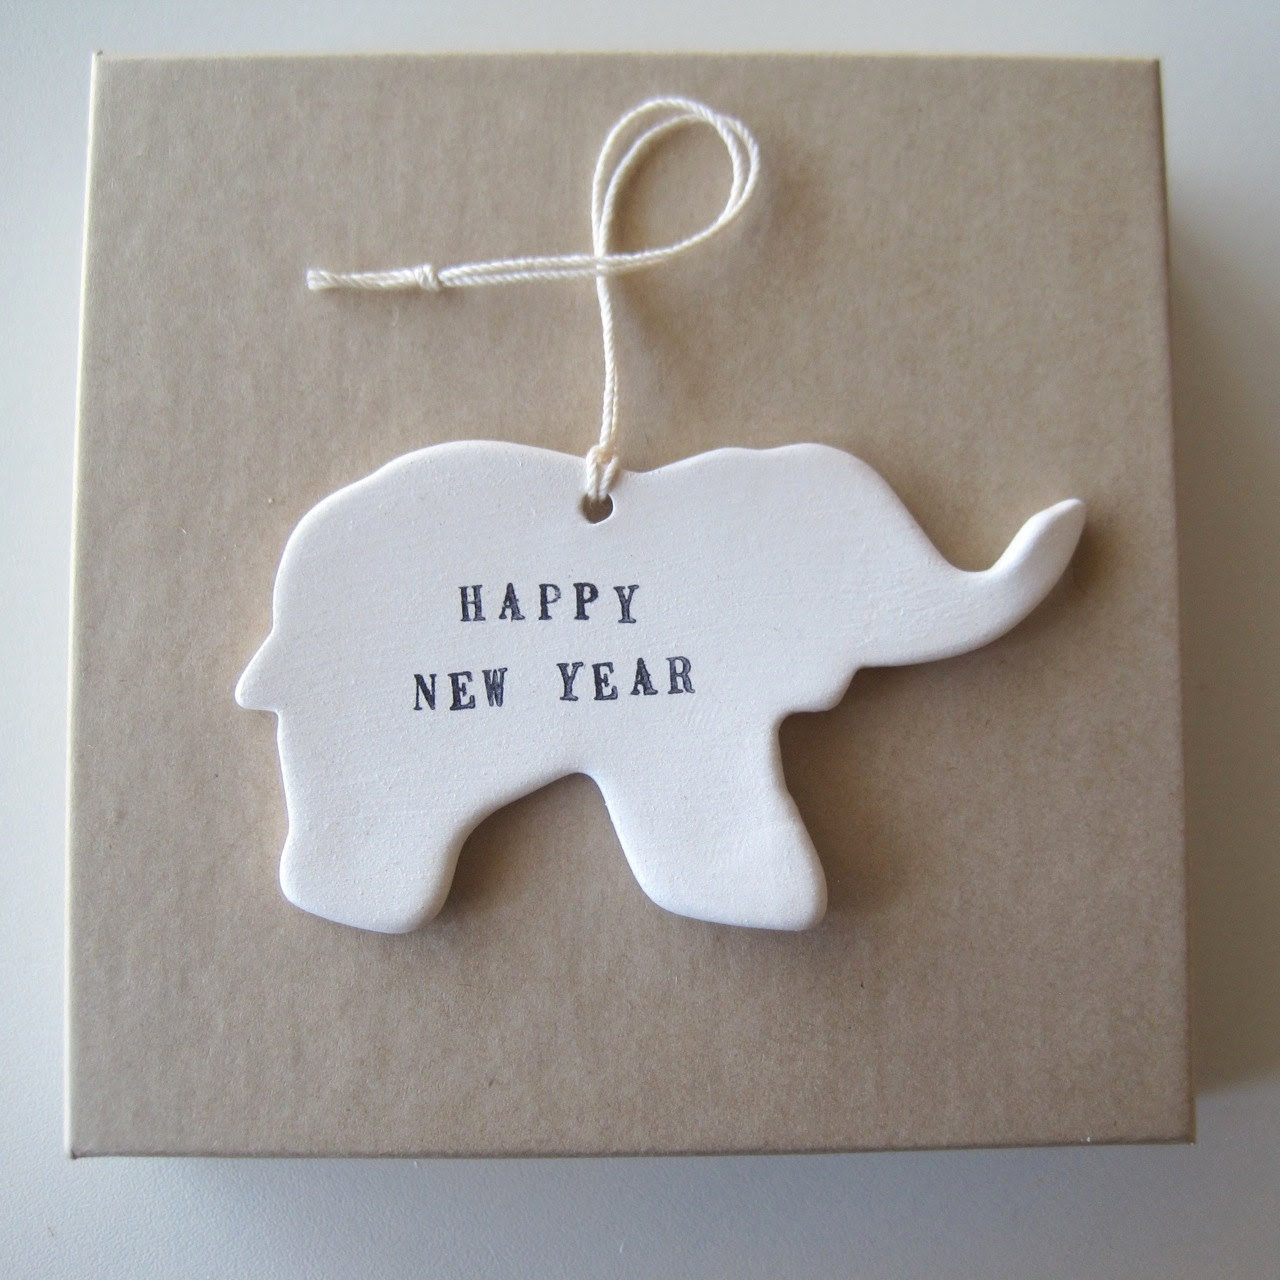 Elephant Ornament Happy New Year by Paloma's Nest